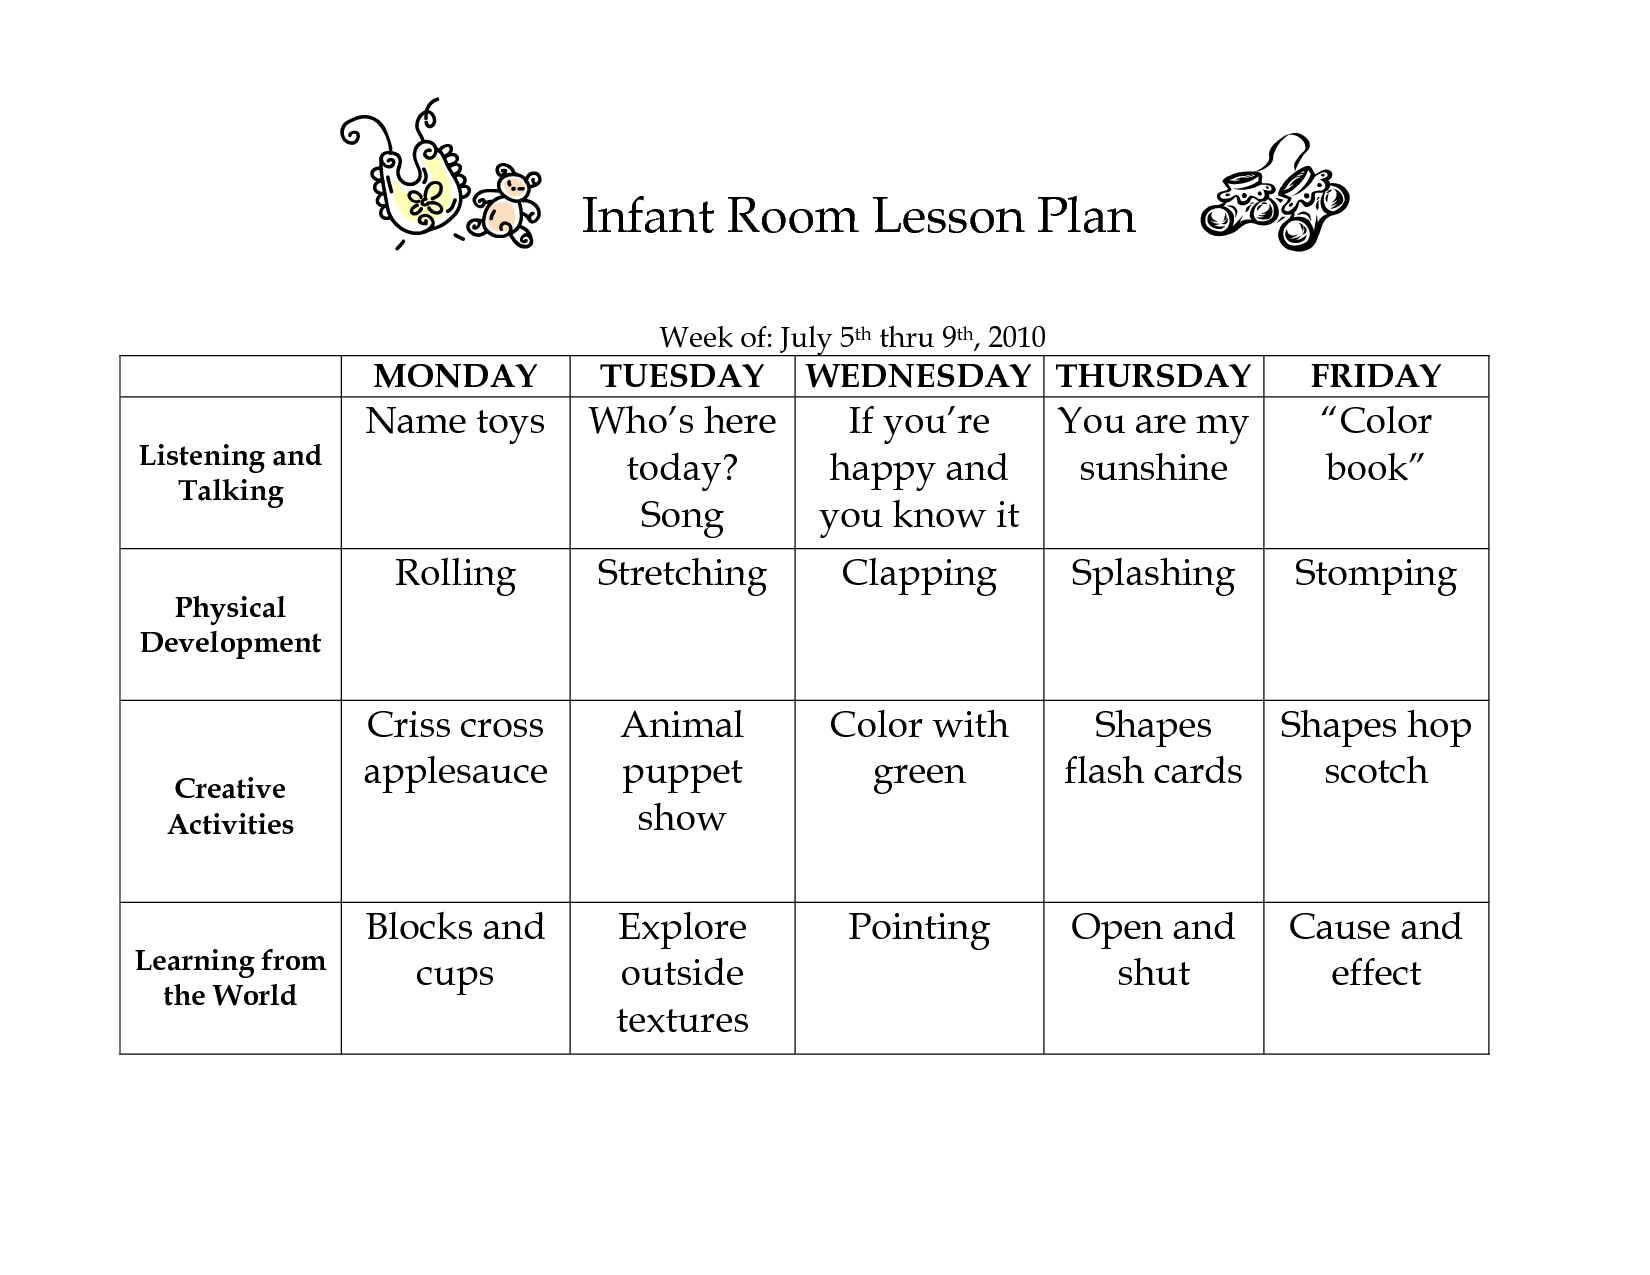 Infant Room Lesson Plan - Westlake Childcare By Linzhengnd-Printable Template Childcare Lesson Plan 2020